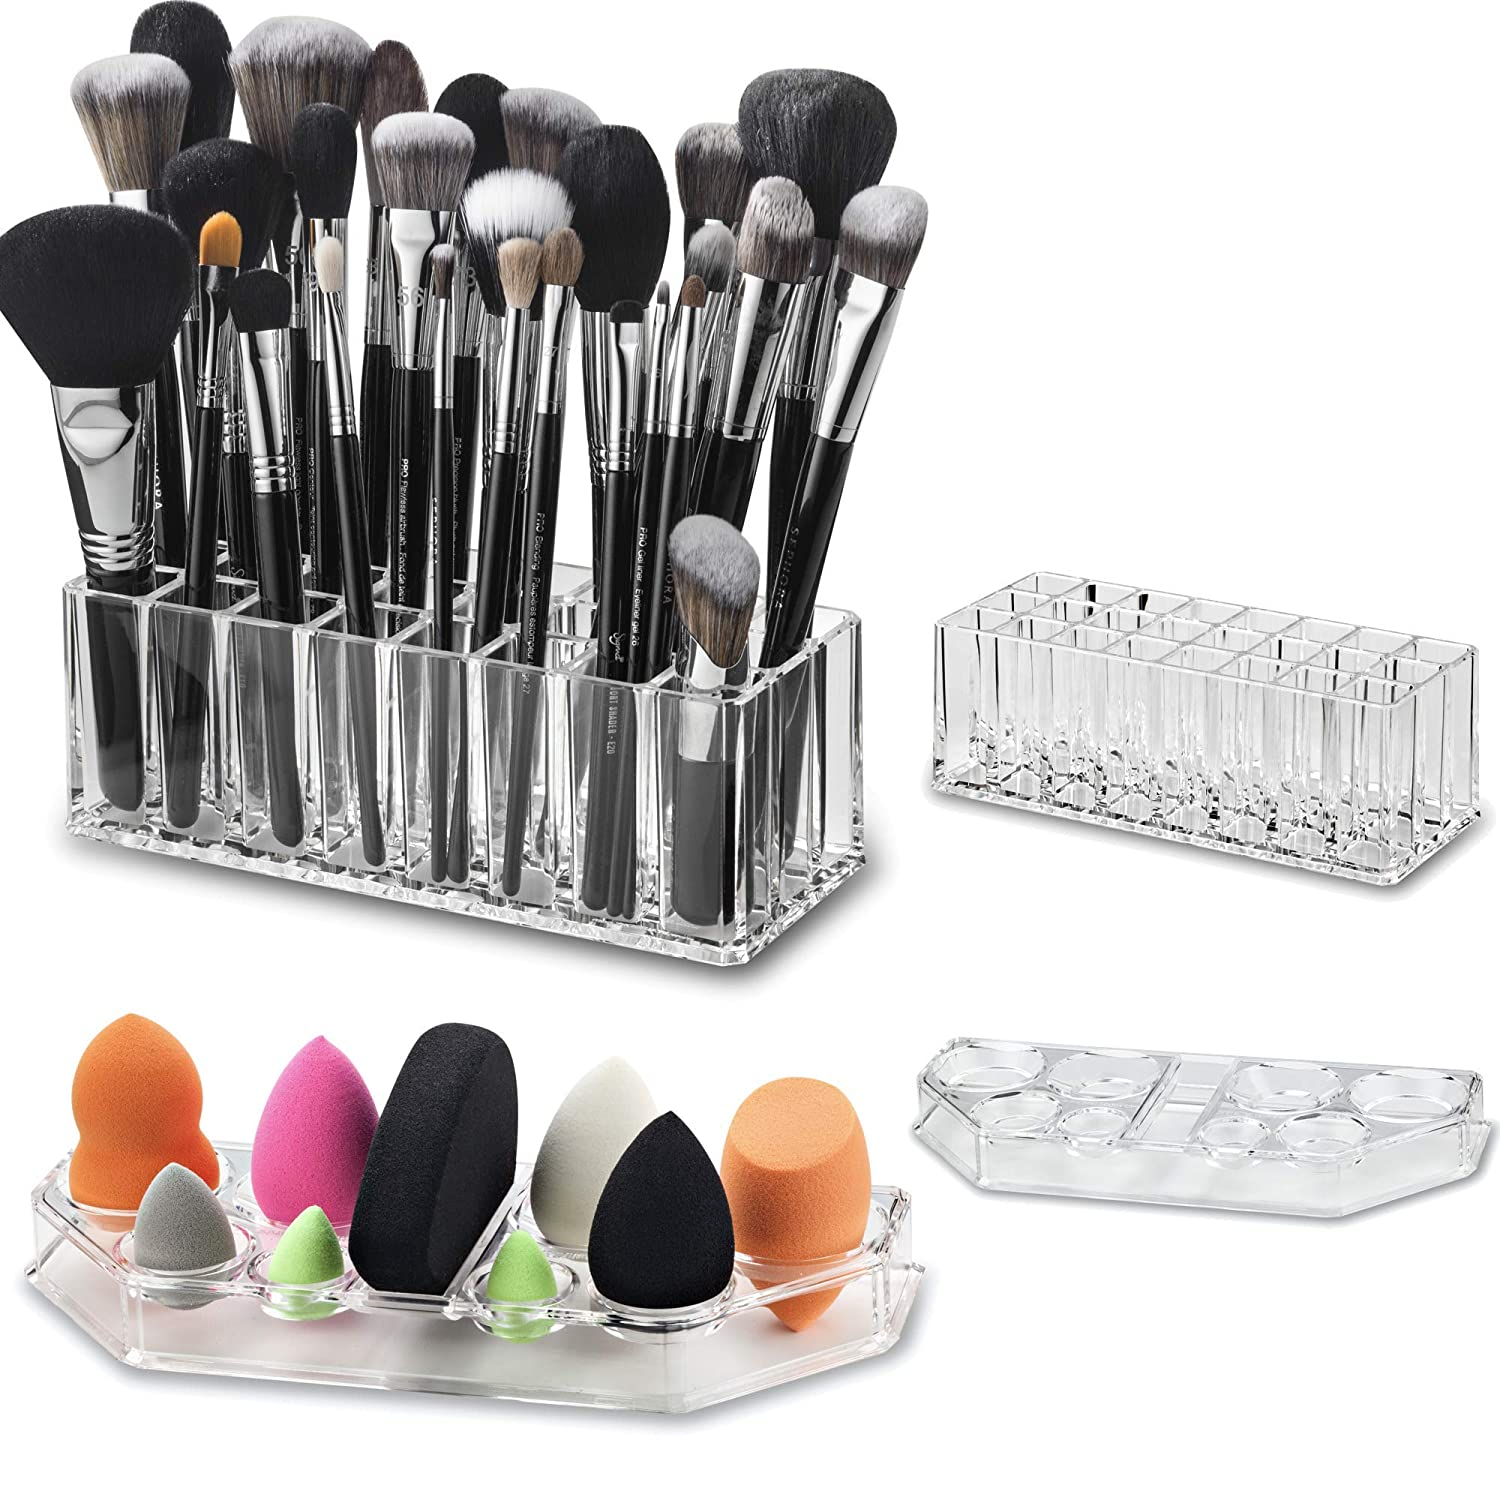 byAlegory Set of (1) Acrylic Makeup Brush Organizer 24 Space Cosmetic Storage & (1) Beauty Sponge Tray for Drying, Storing Body Face Blending Sponges - Clear